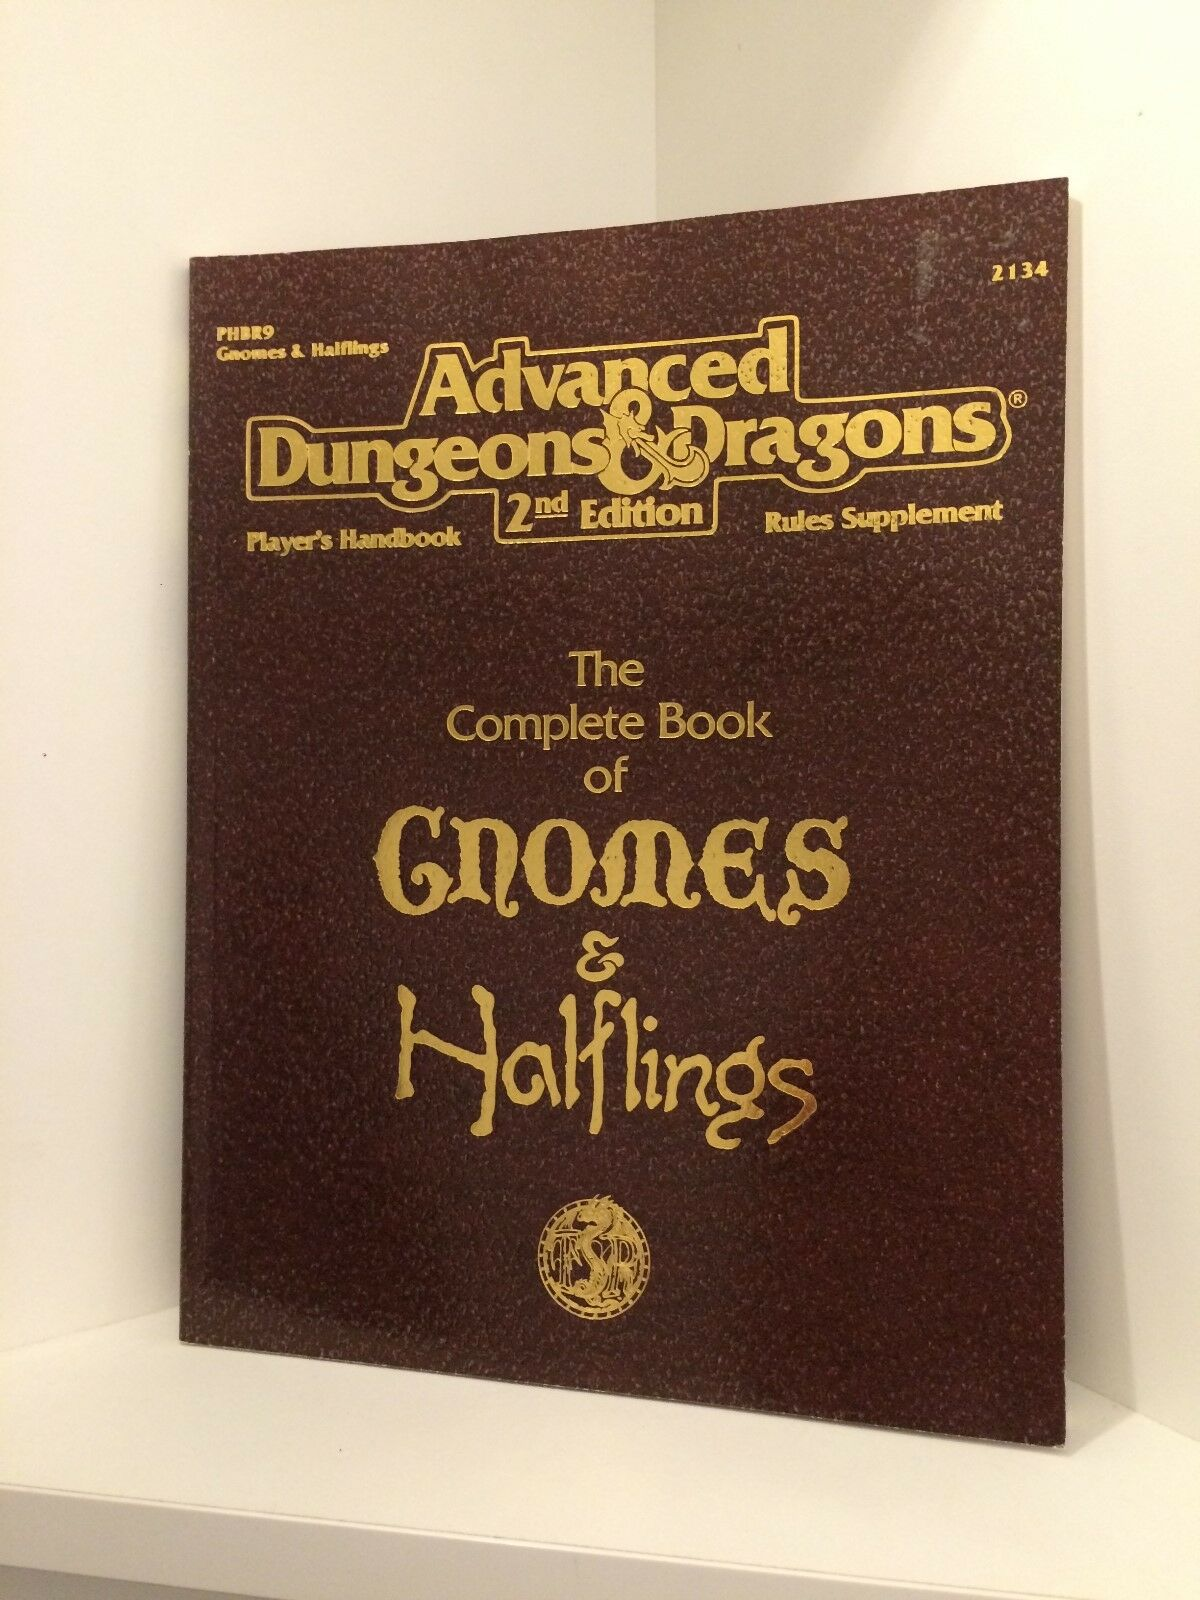 The Complete Book of Gnomes & Halflings, Dungeons & Dragons 2nd Ed. (AD&D), RPG